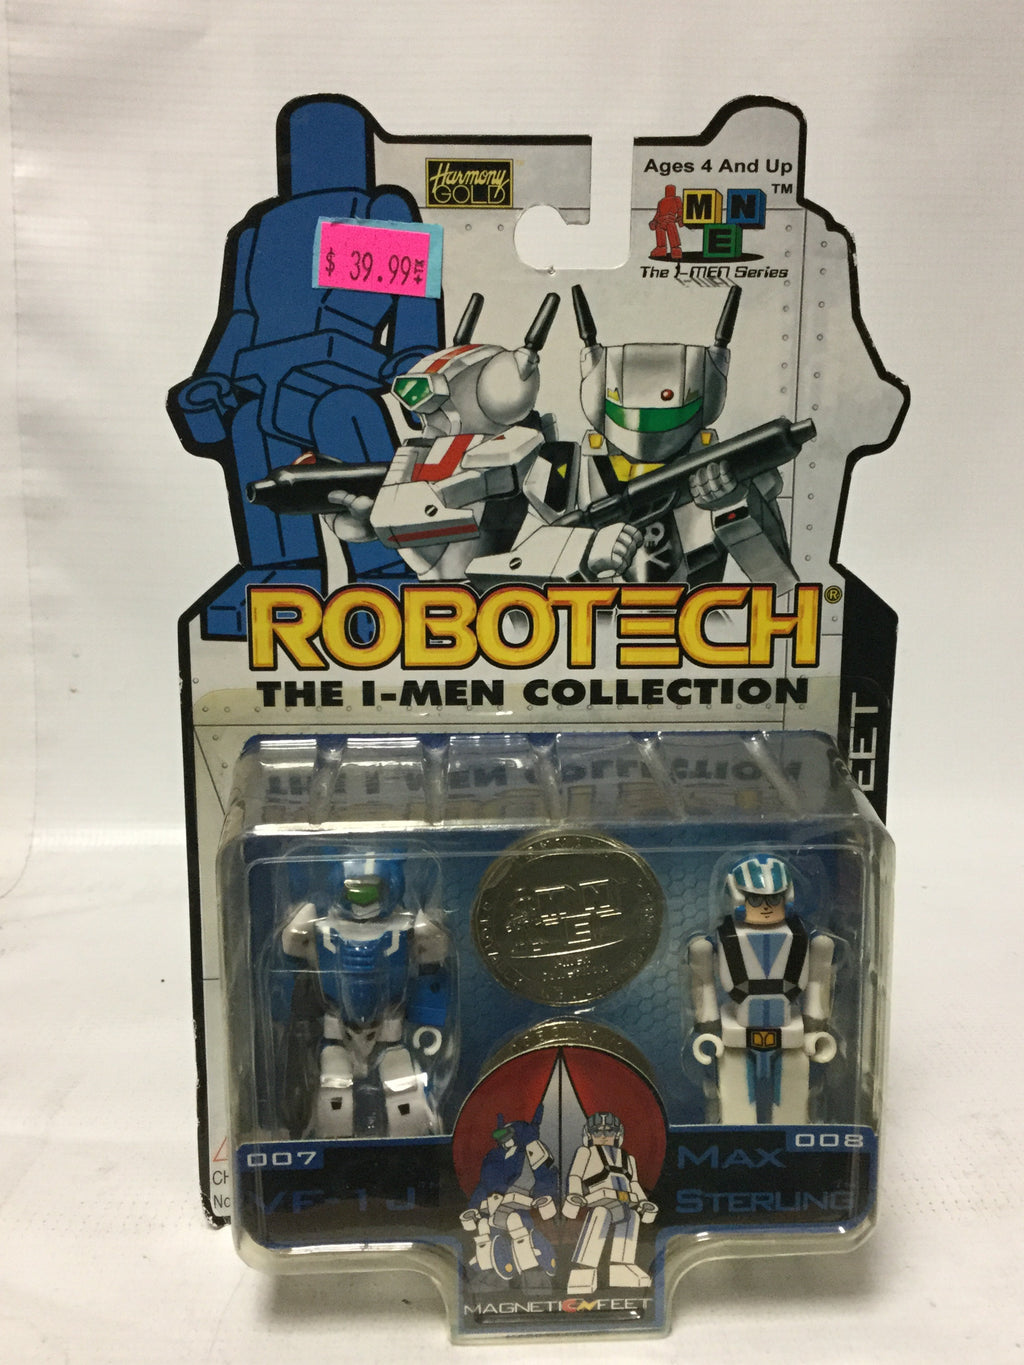 Toynami Robotech The 1-Men Collection 007 VF-1J And 008 Max Sterling